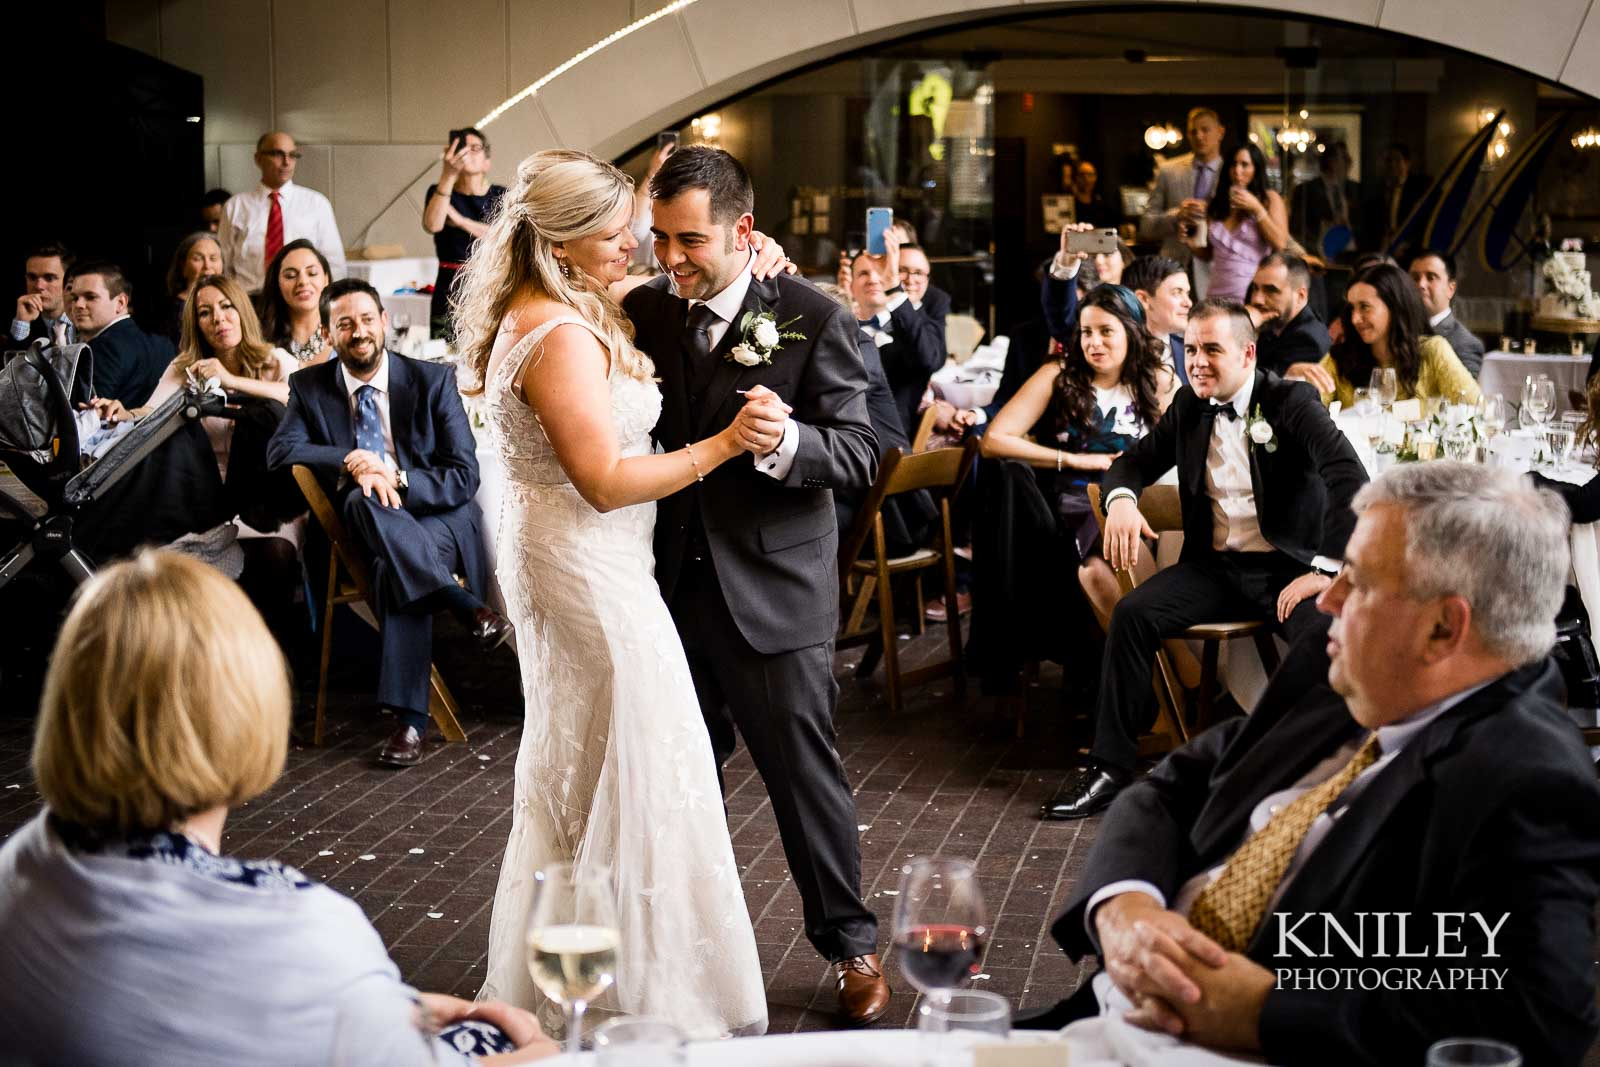 59-Max-of-Eastman-Wedding-and-Reception-Rochester-NY-Kniley-Photography.jpg